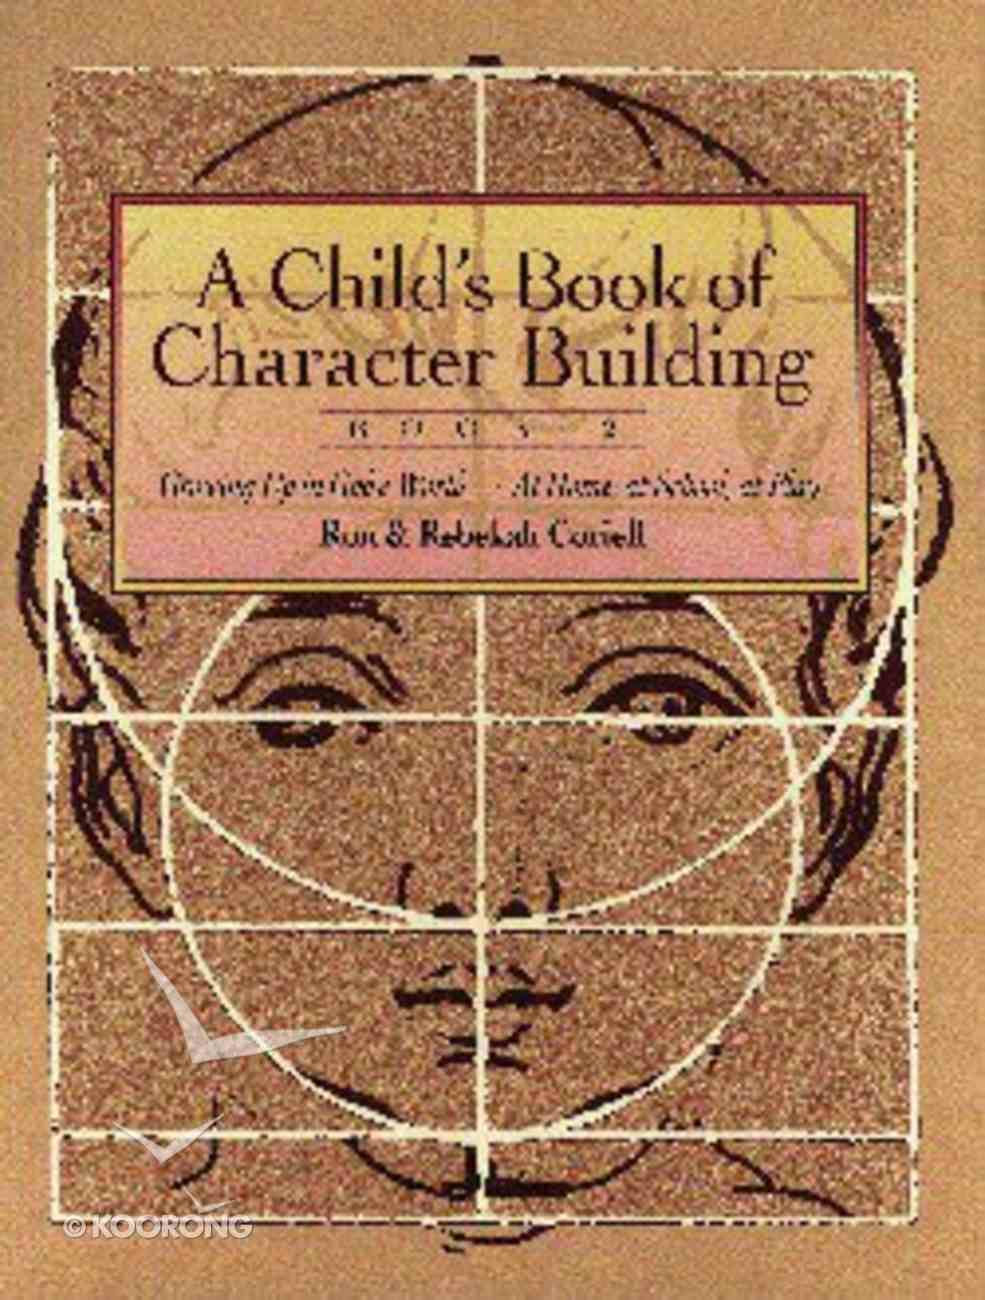 Child's Book of Character Building #02: Growing Up in God's World - At Home, At School, At Play Paperback